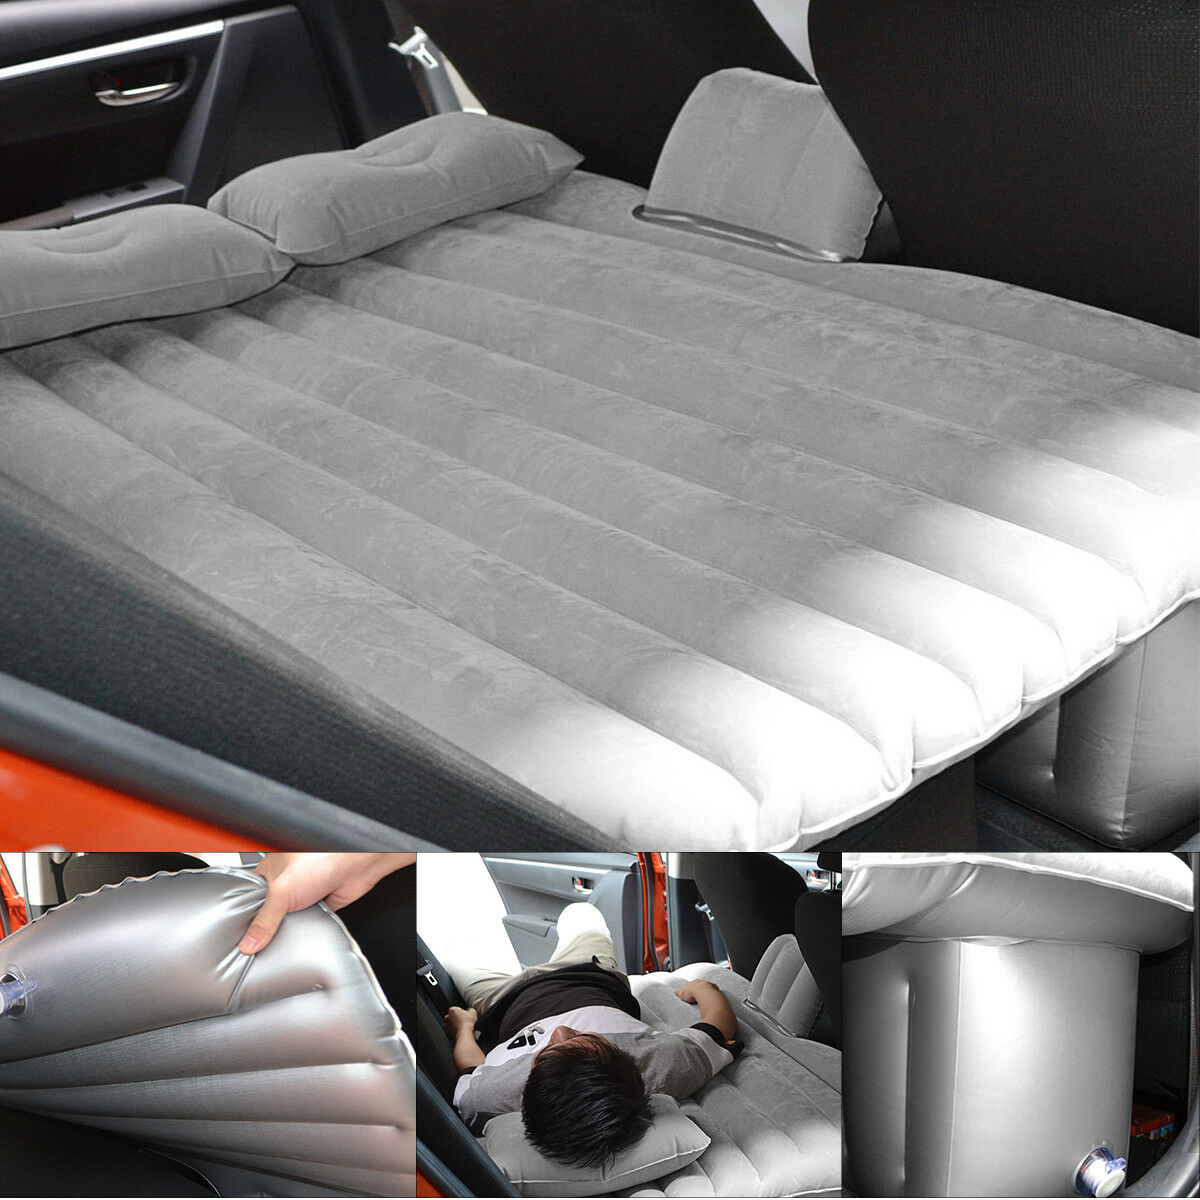 Car Air Mattress Travel Bed Flocking Inflatable Cushion Seat Car Bed For Camping Ebay